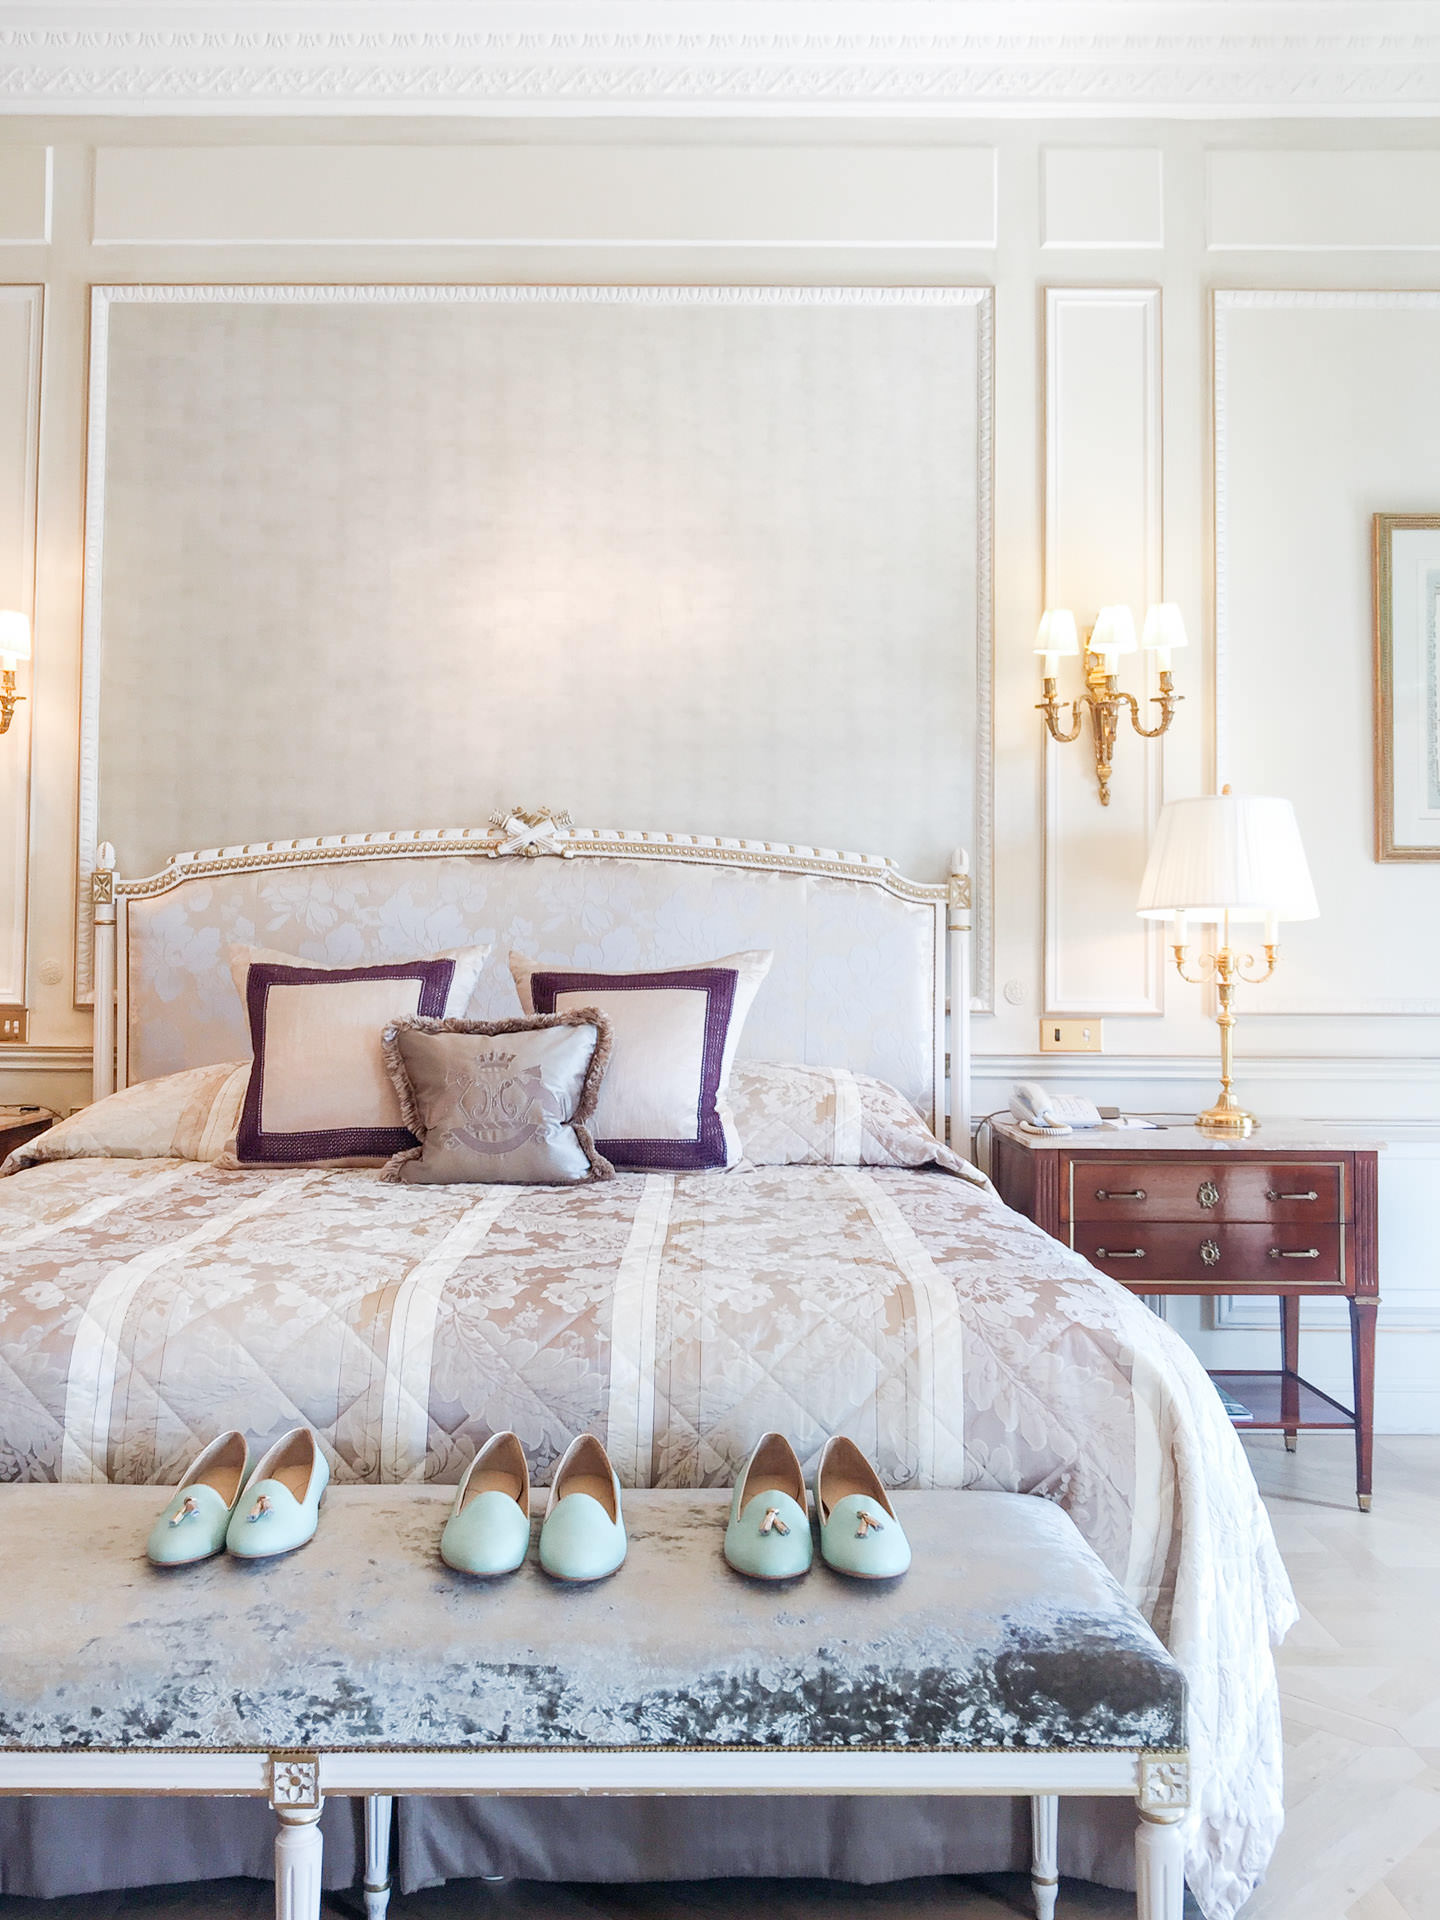 Blog-Mode-And-The-City-Lifestyle-Cinq-Petites-Choses-179-Chatelles-Le-Meurice